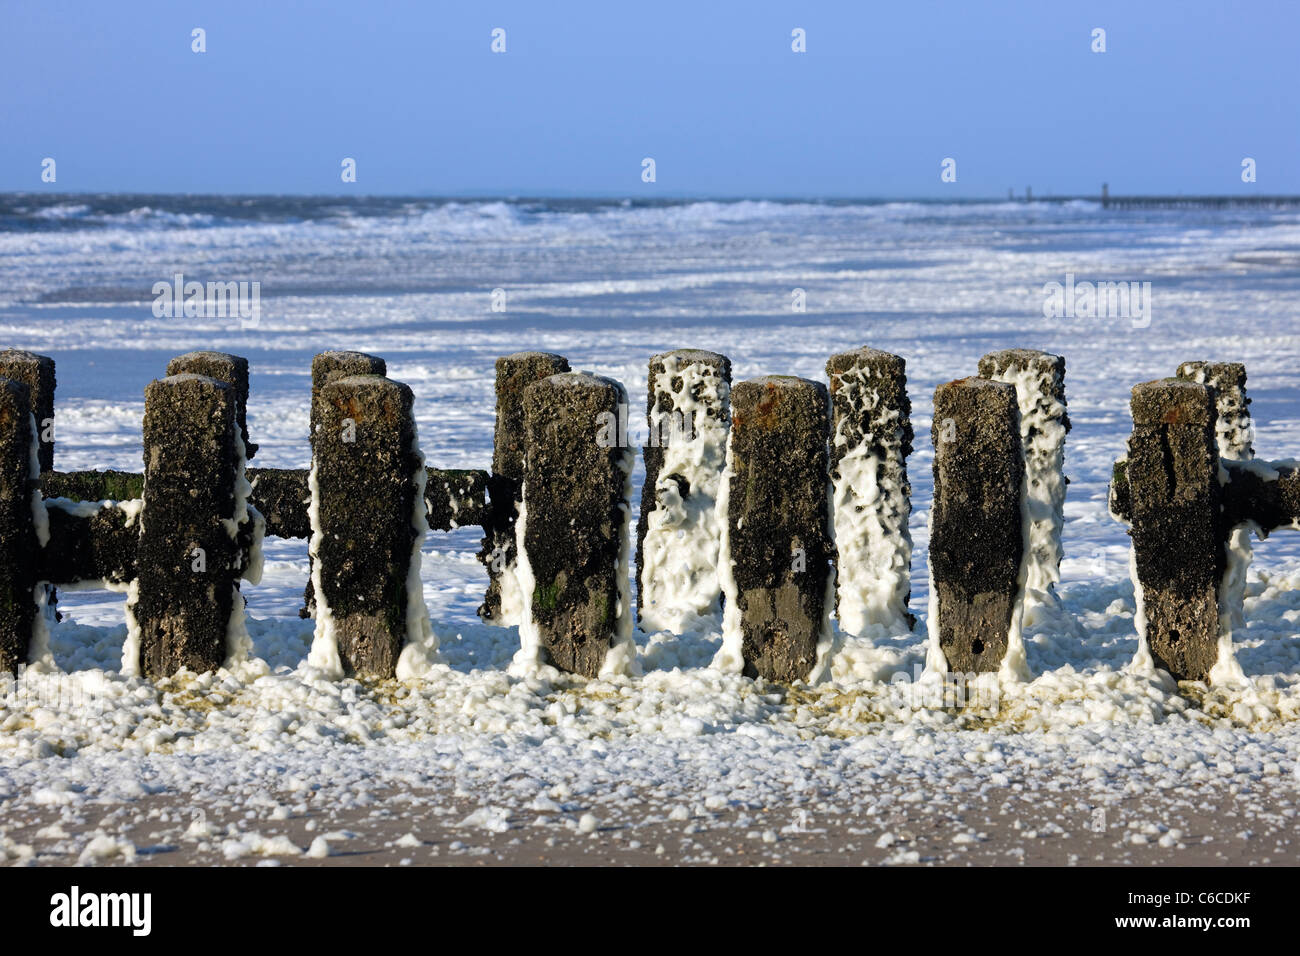 Wooden breakwater covered in sea foam / ocean foam / beach foam formed during stormy conditions and following an - Stock Image